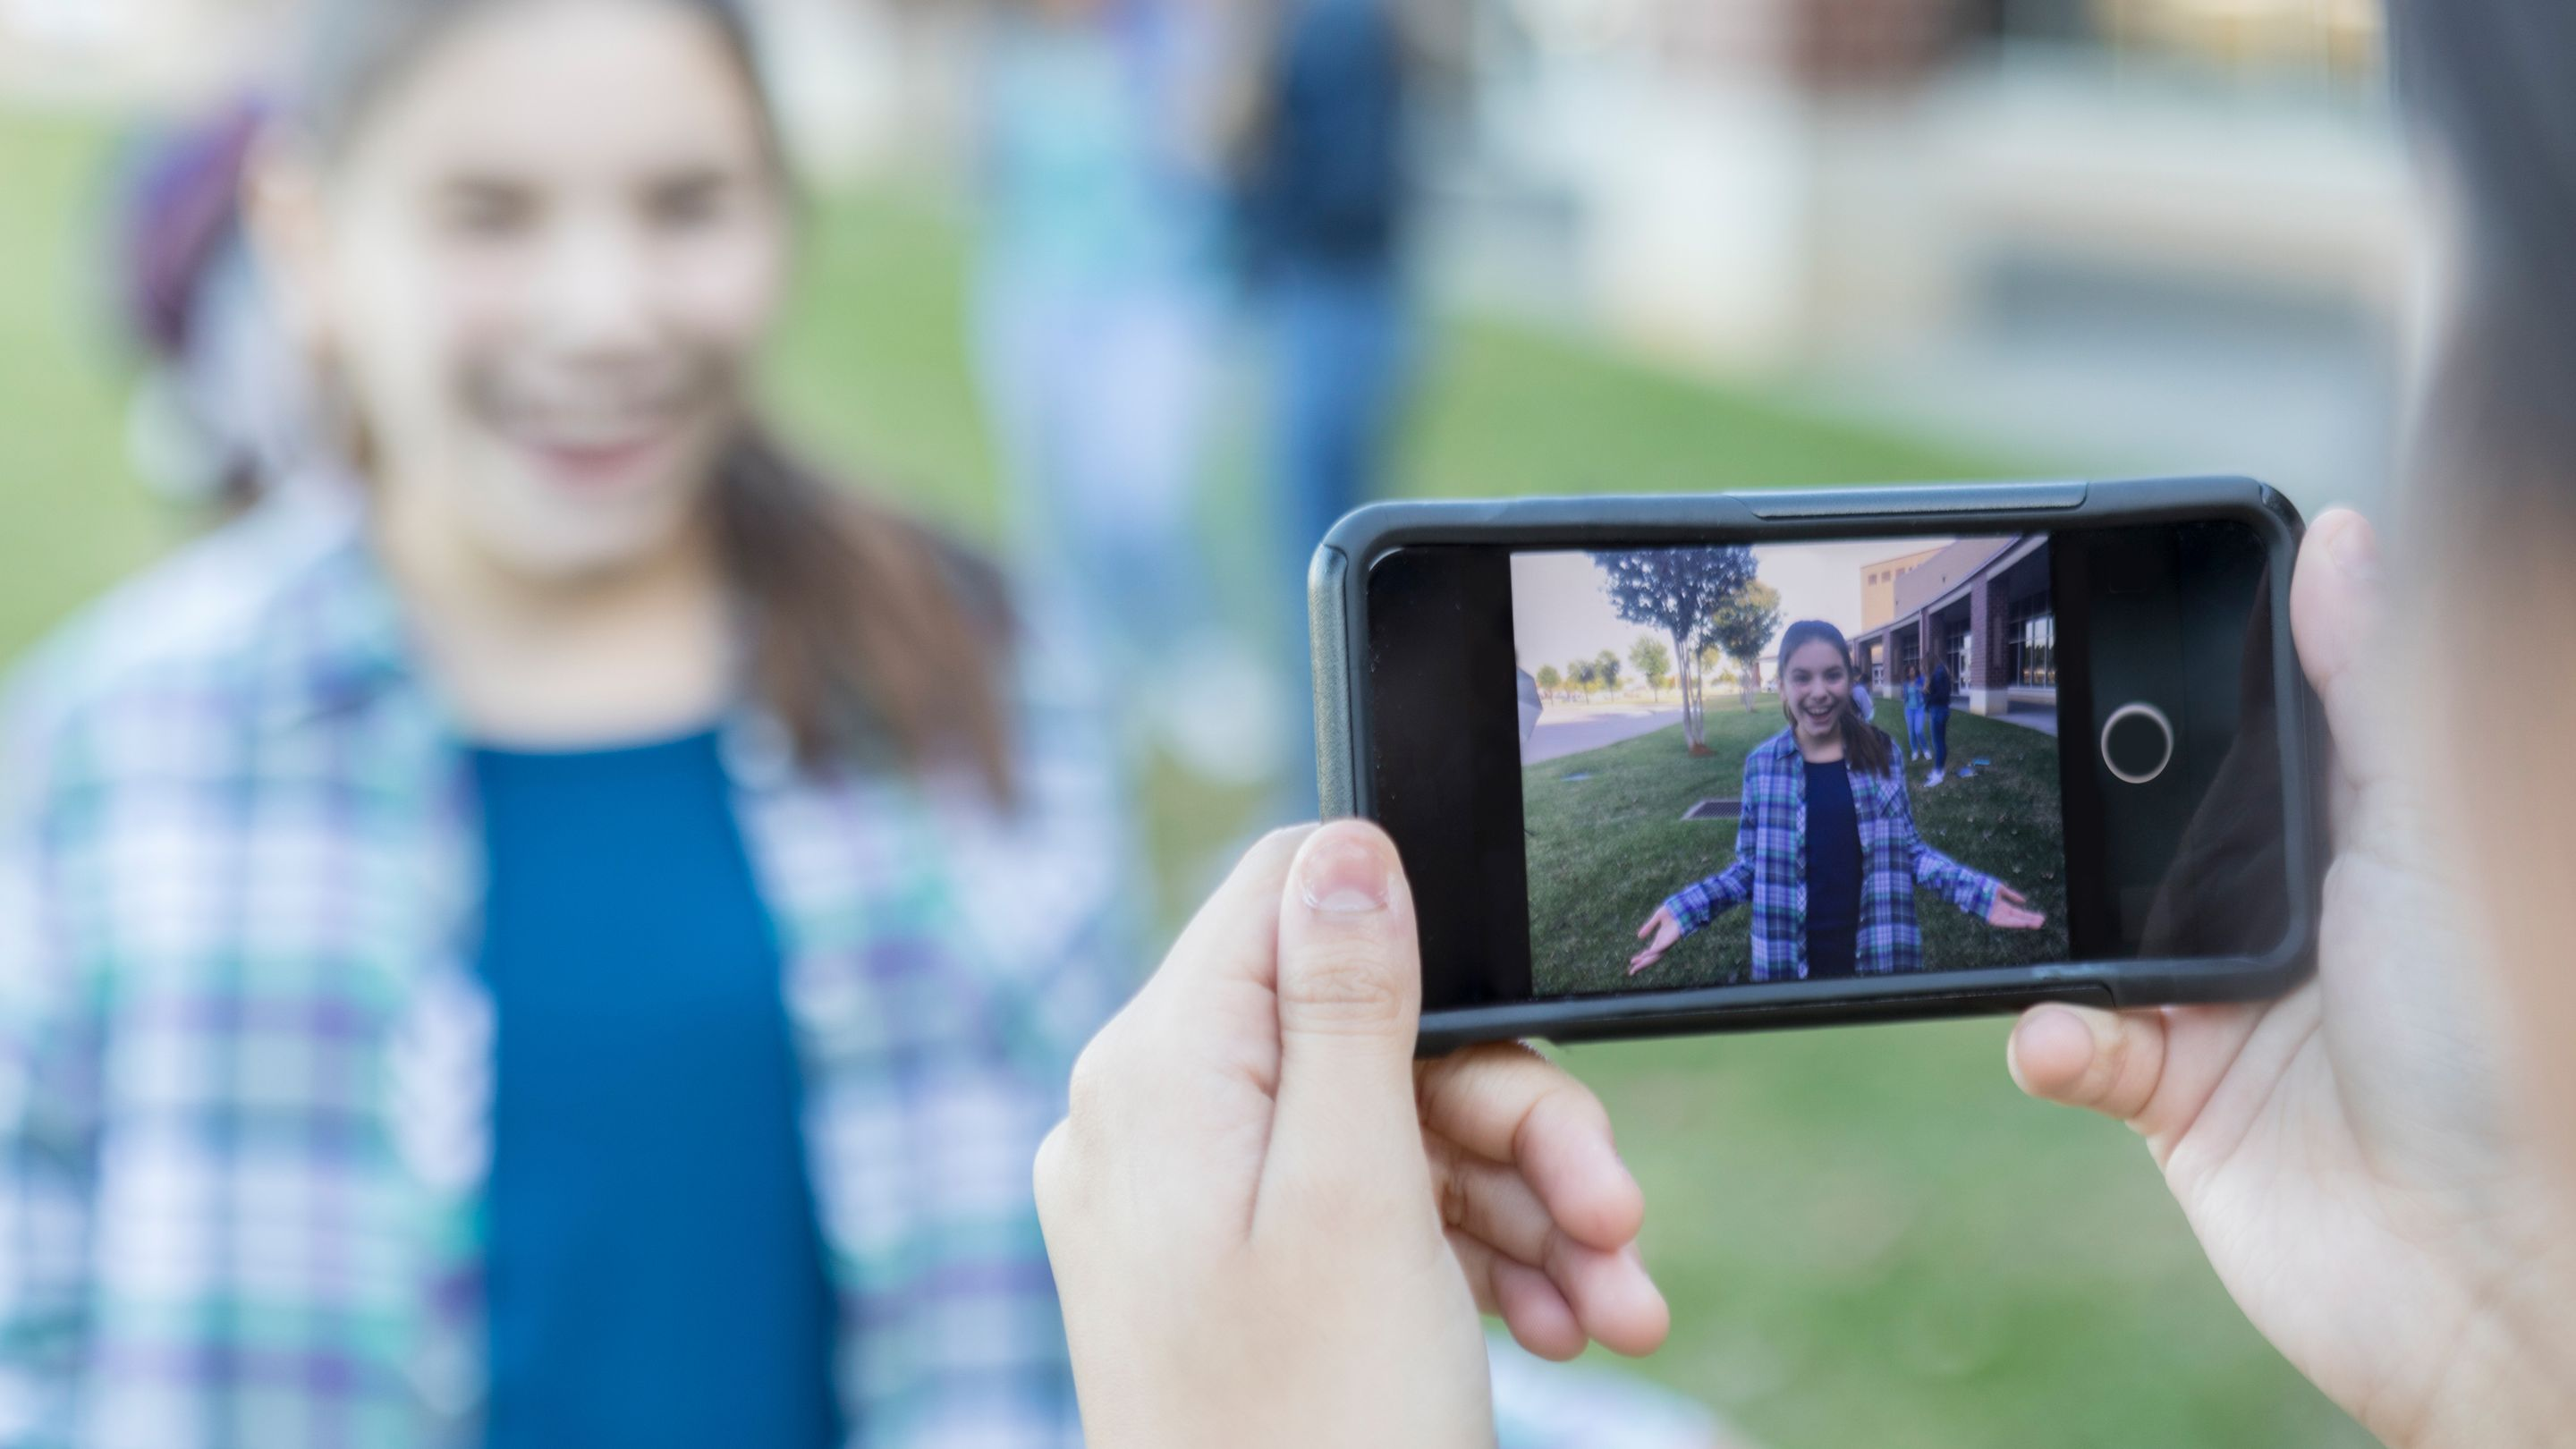 Breaking the Ice With Student-Made Videos